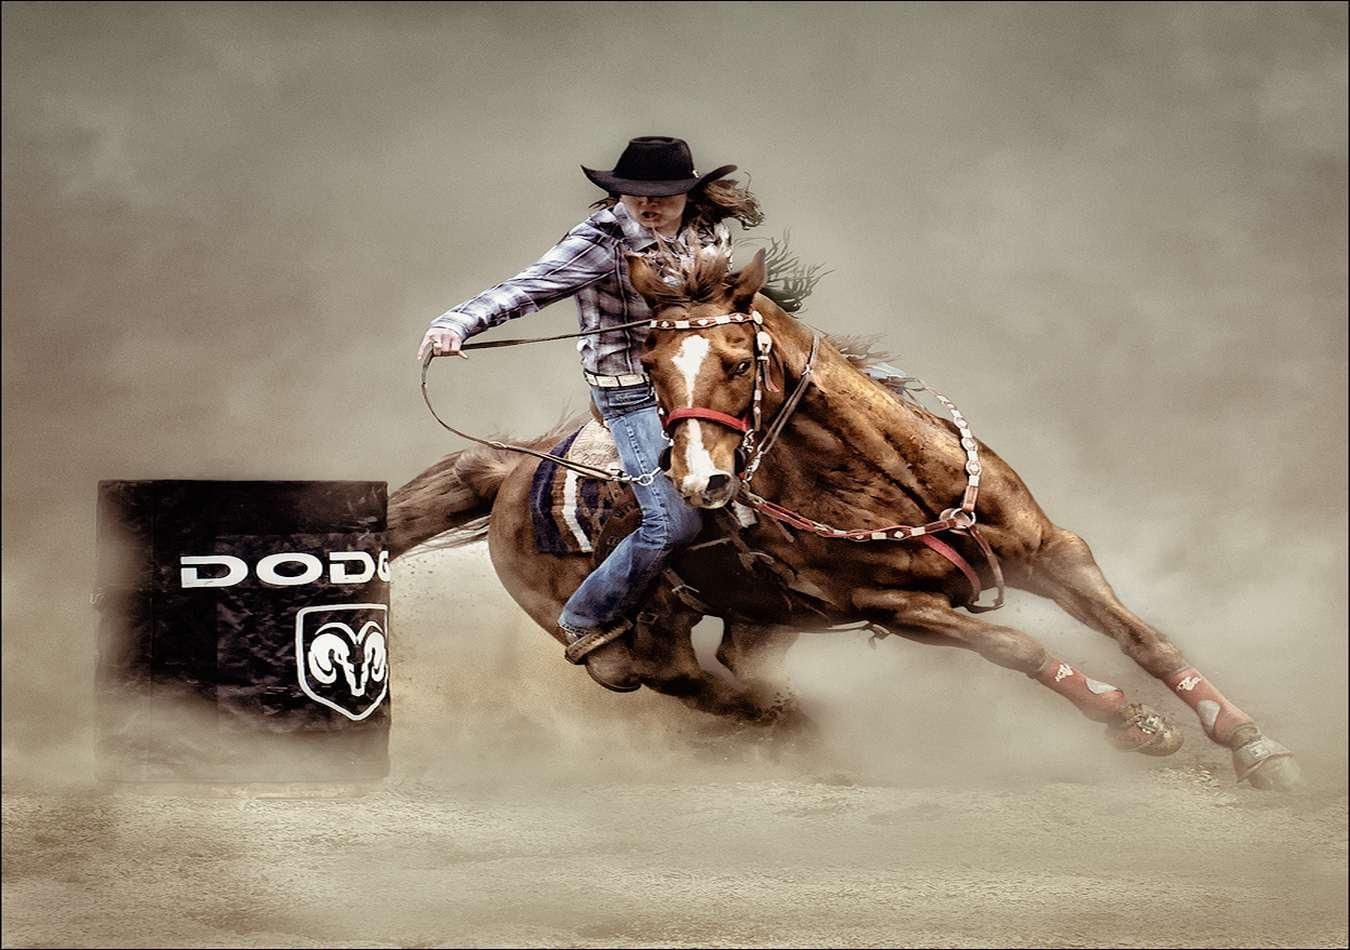 Rodeo Wallpapers Top Free Rodeo Backgrounds Wallpaperaccess